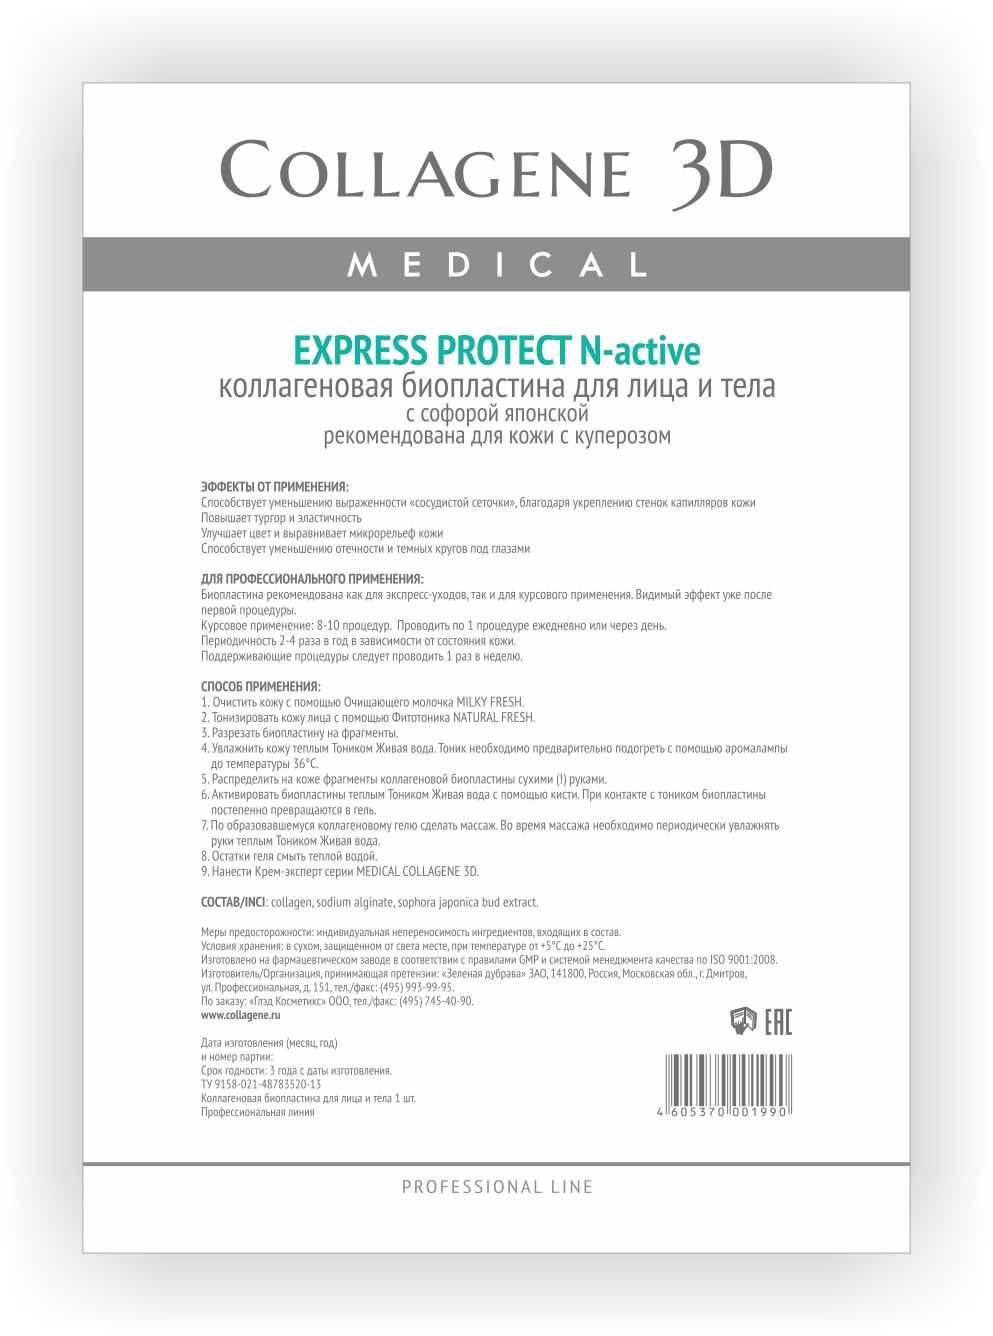 MEDICAL COLLAGENE 3D Биопластины коллагеновые с софорой японской для лица и тела Express Protect А4